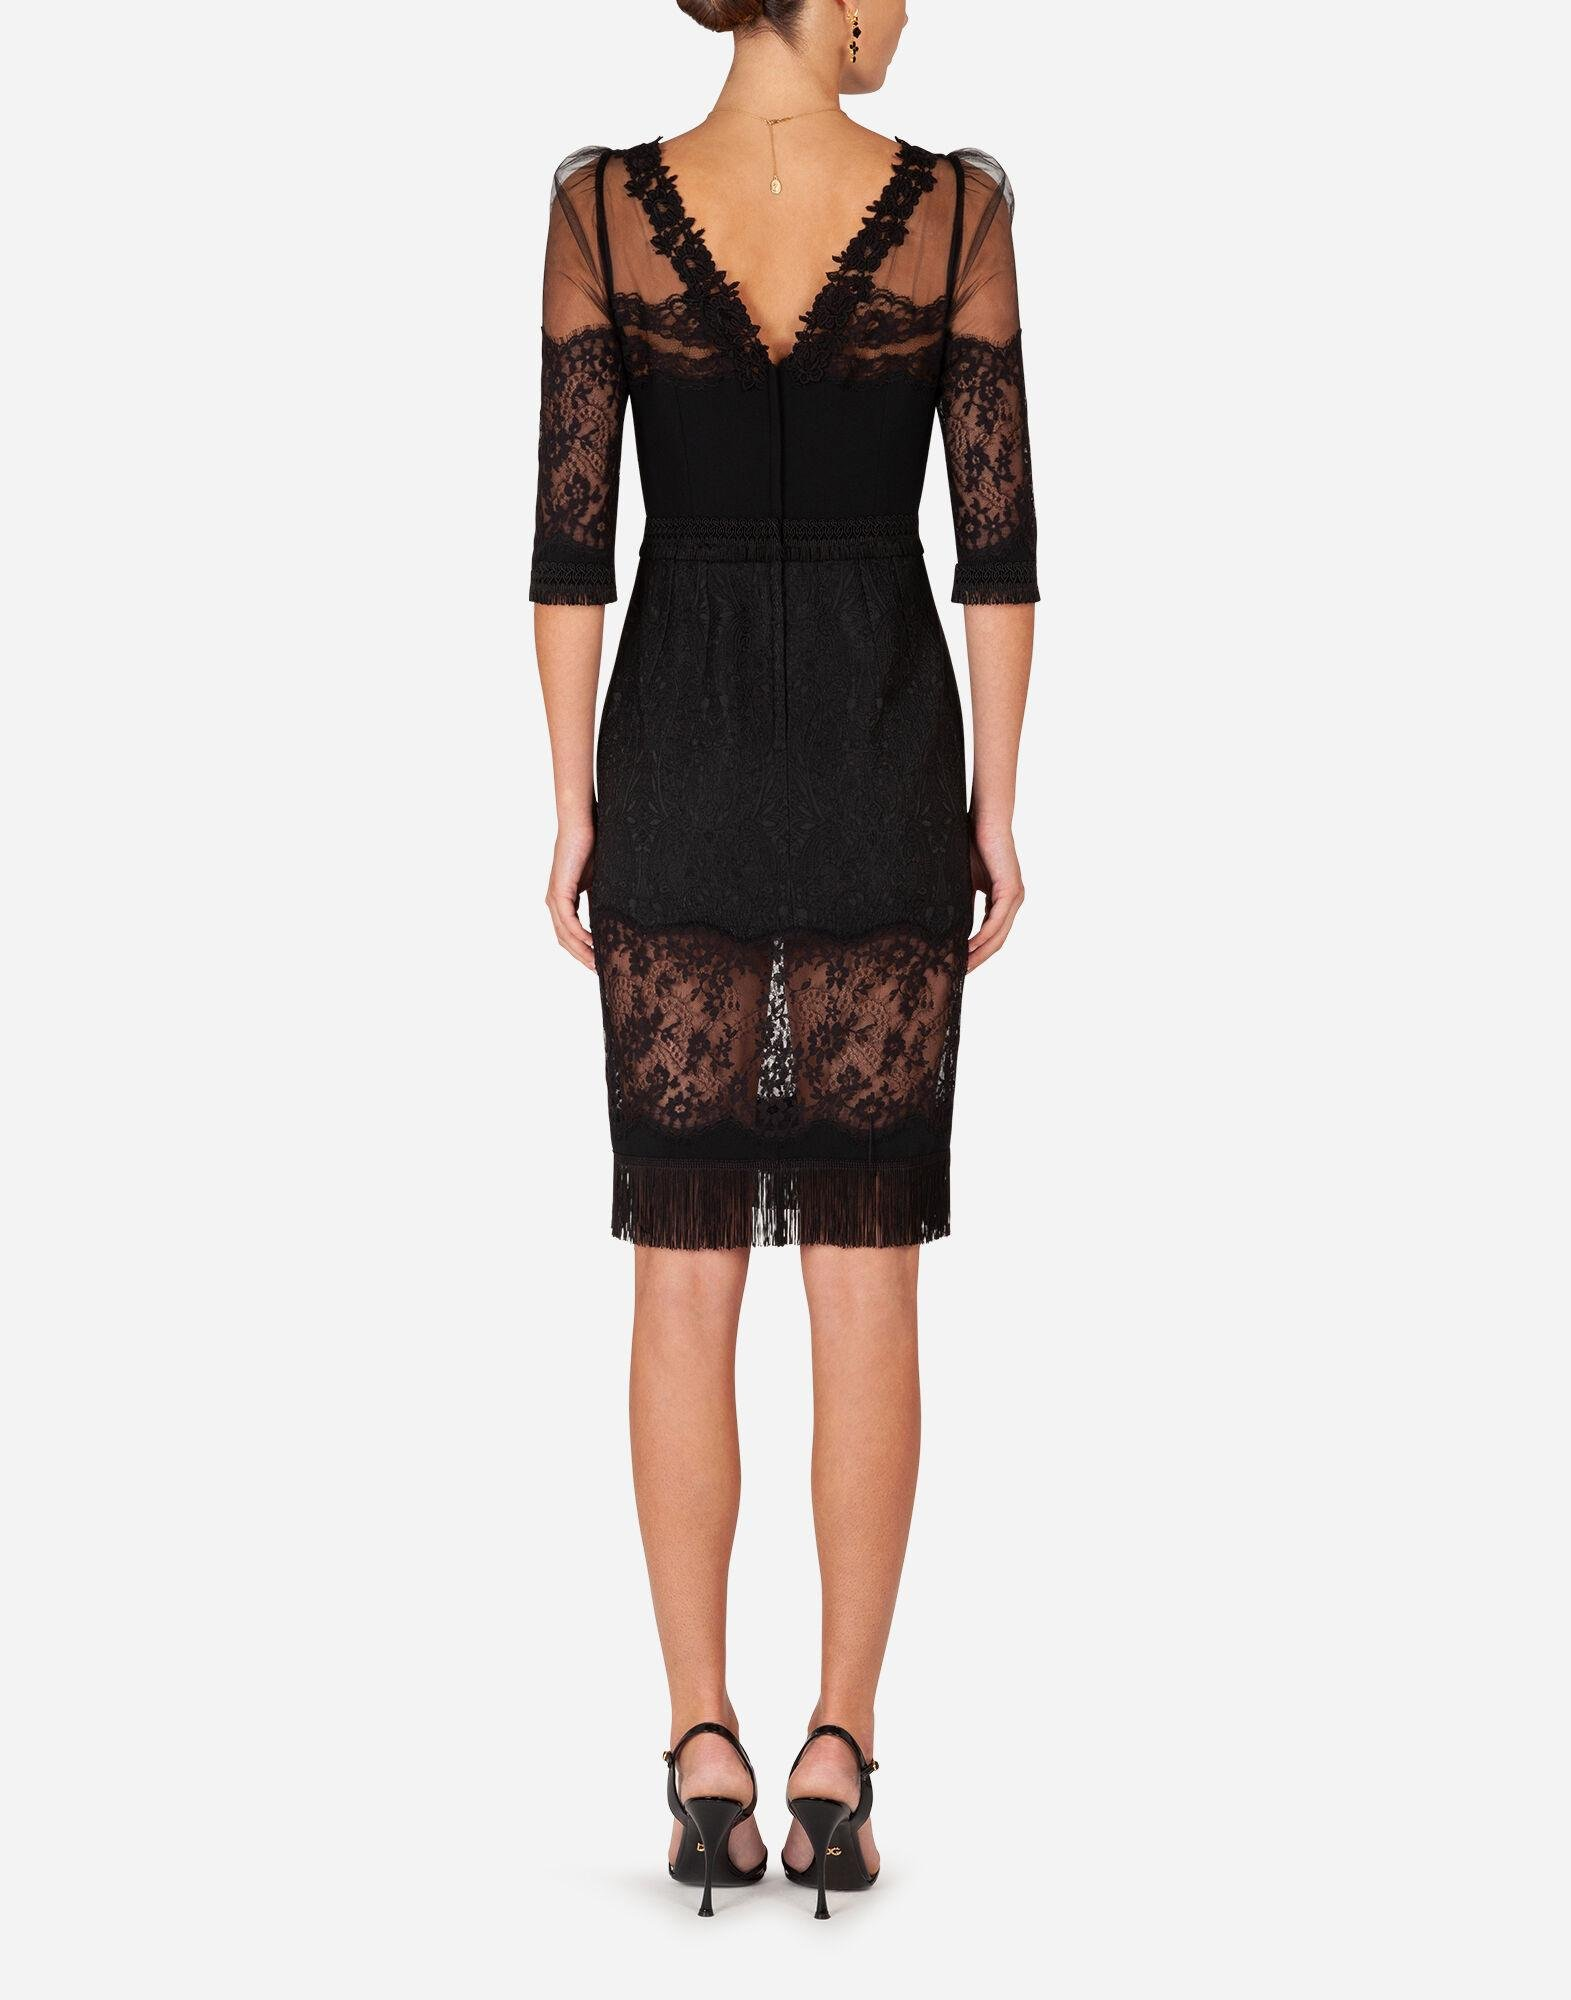 Cady and brocade midi dress with lace inserts 1